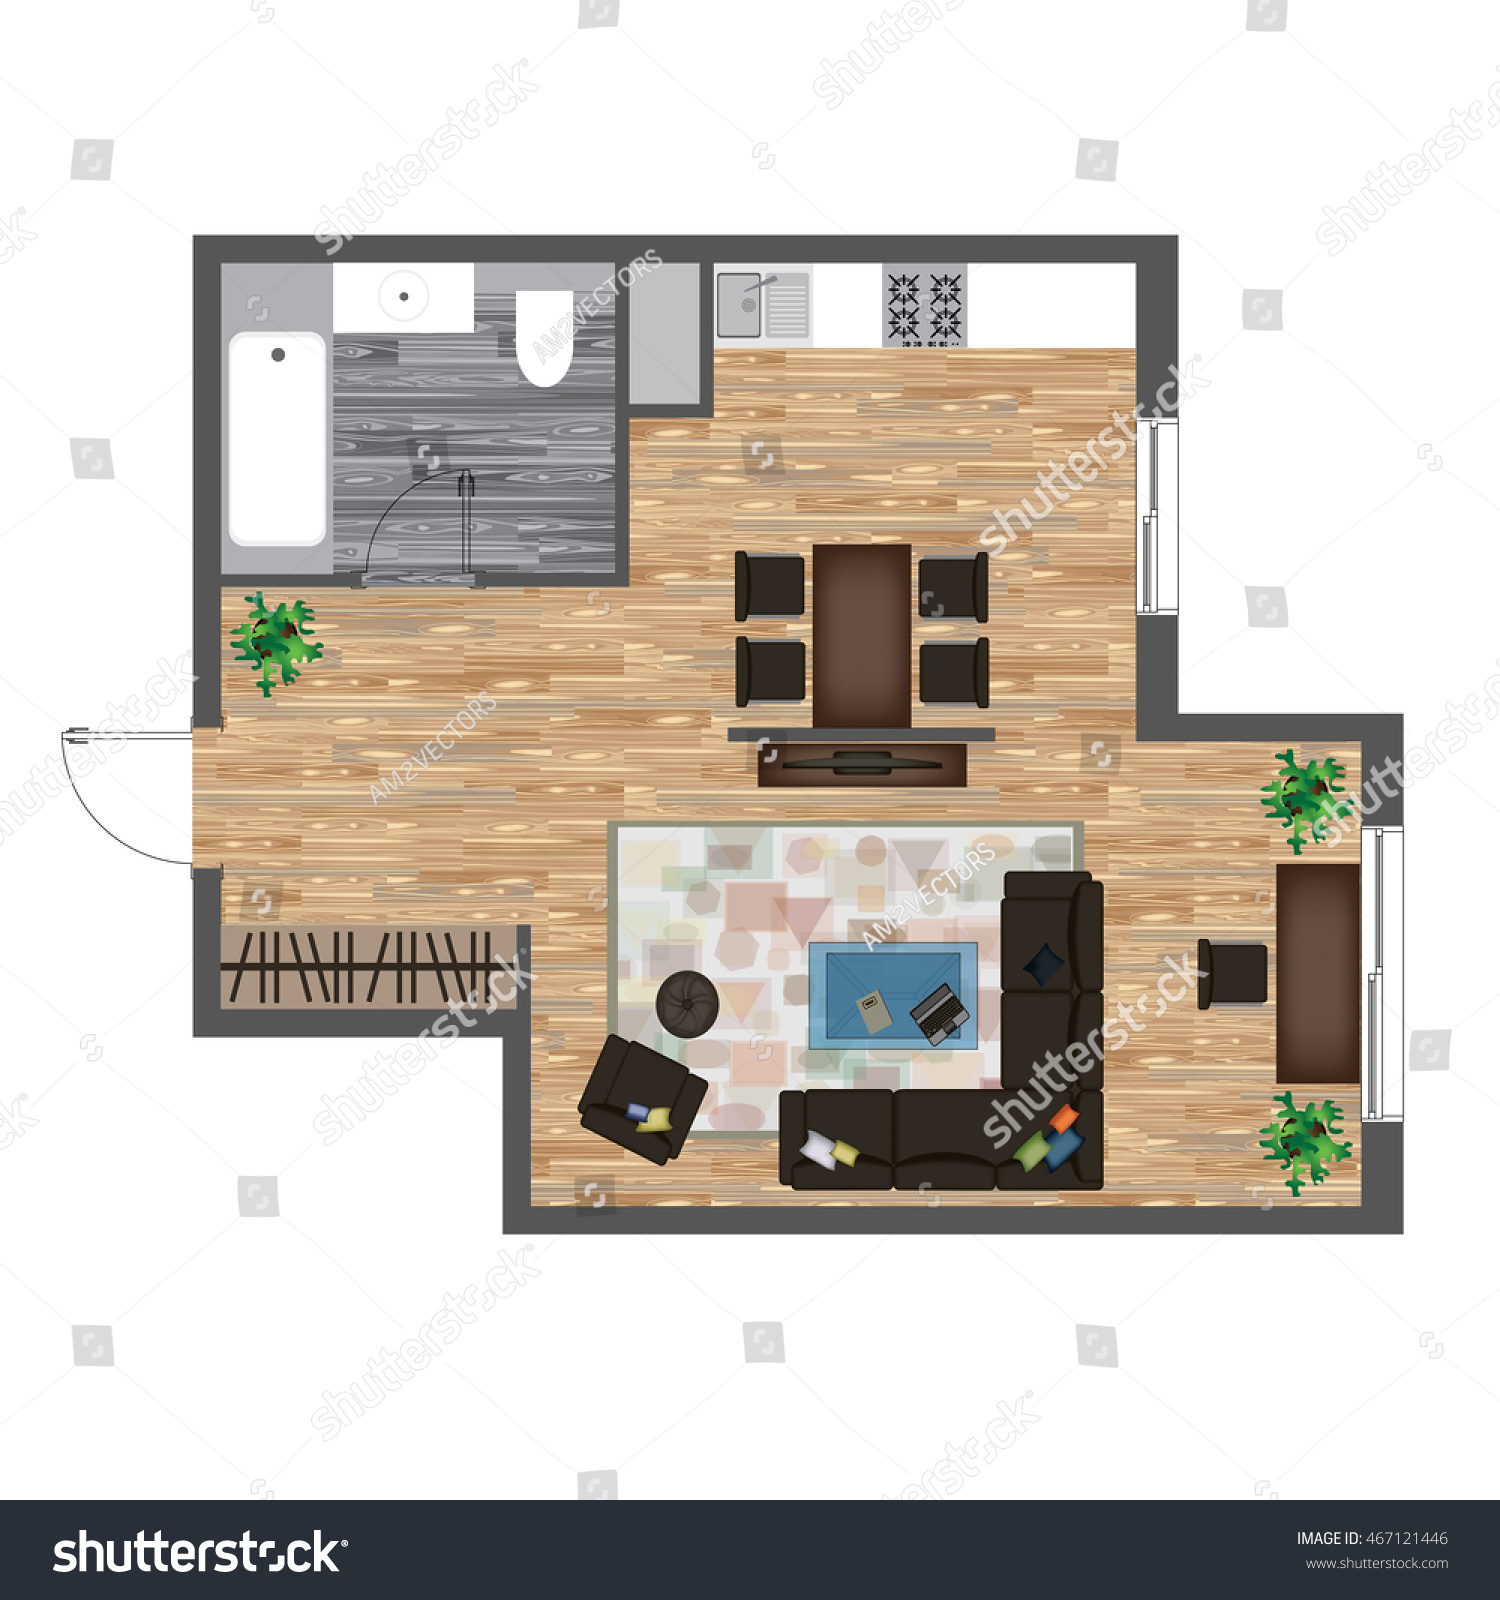 Architectural Color Floor Plan Studio Apartment Stock Vector Royalty Free 467121446